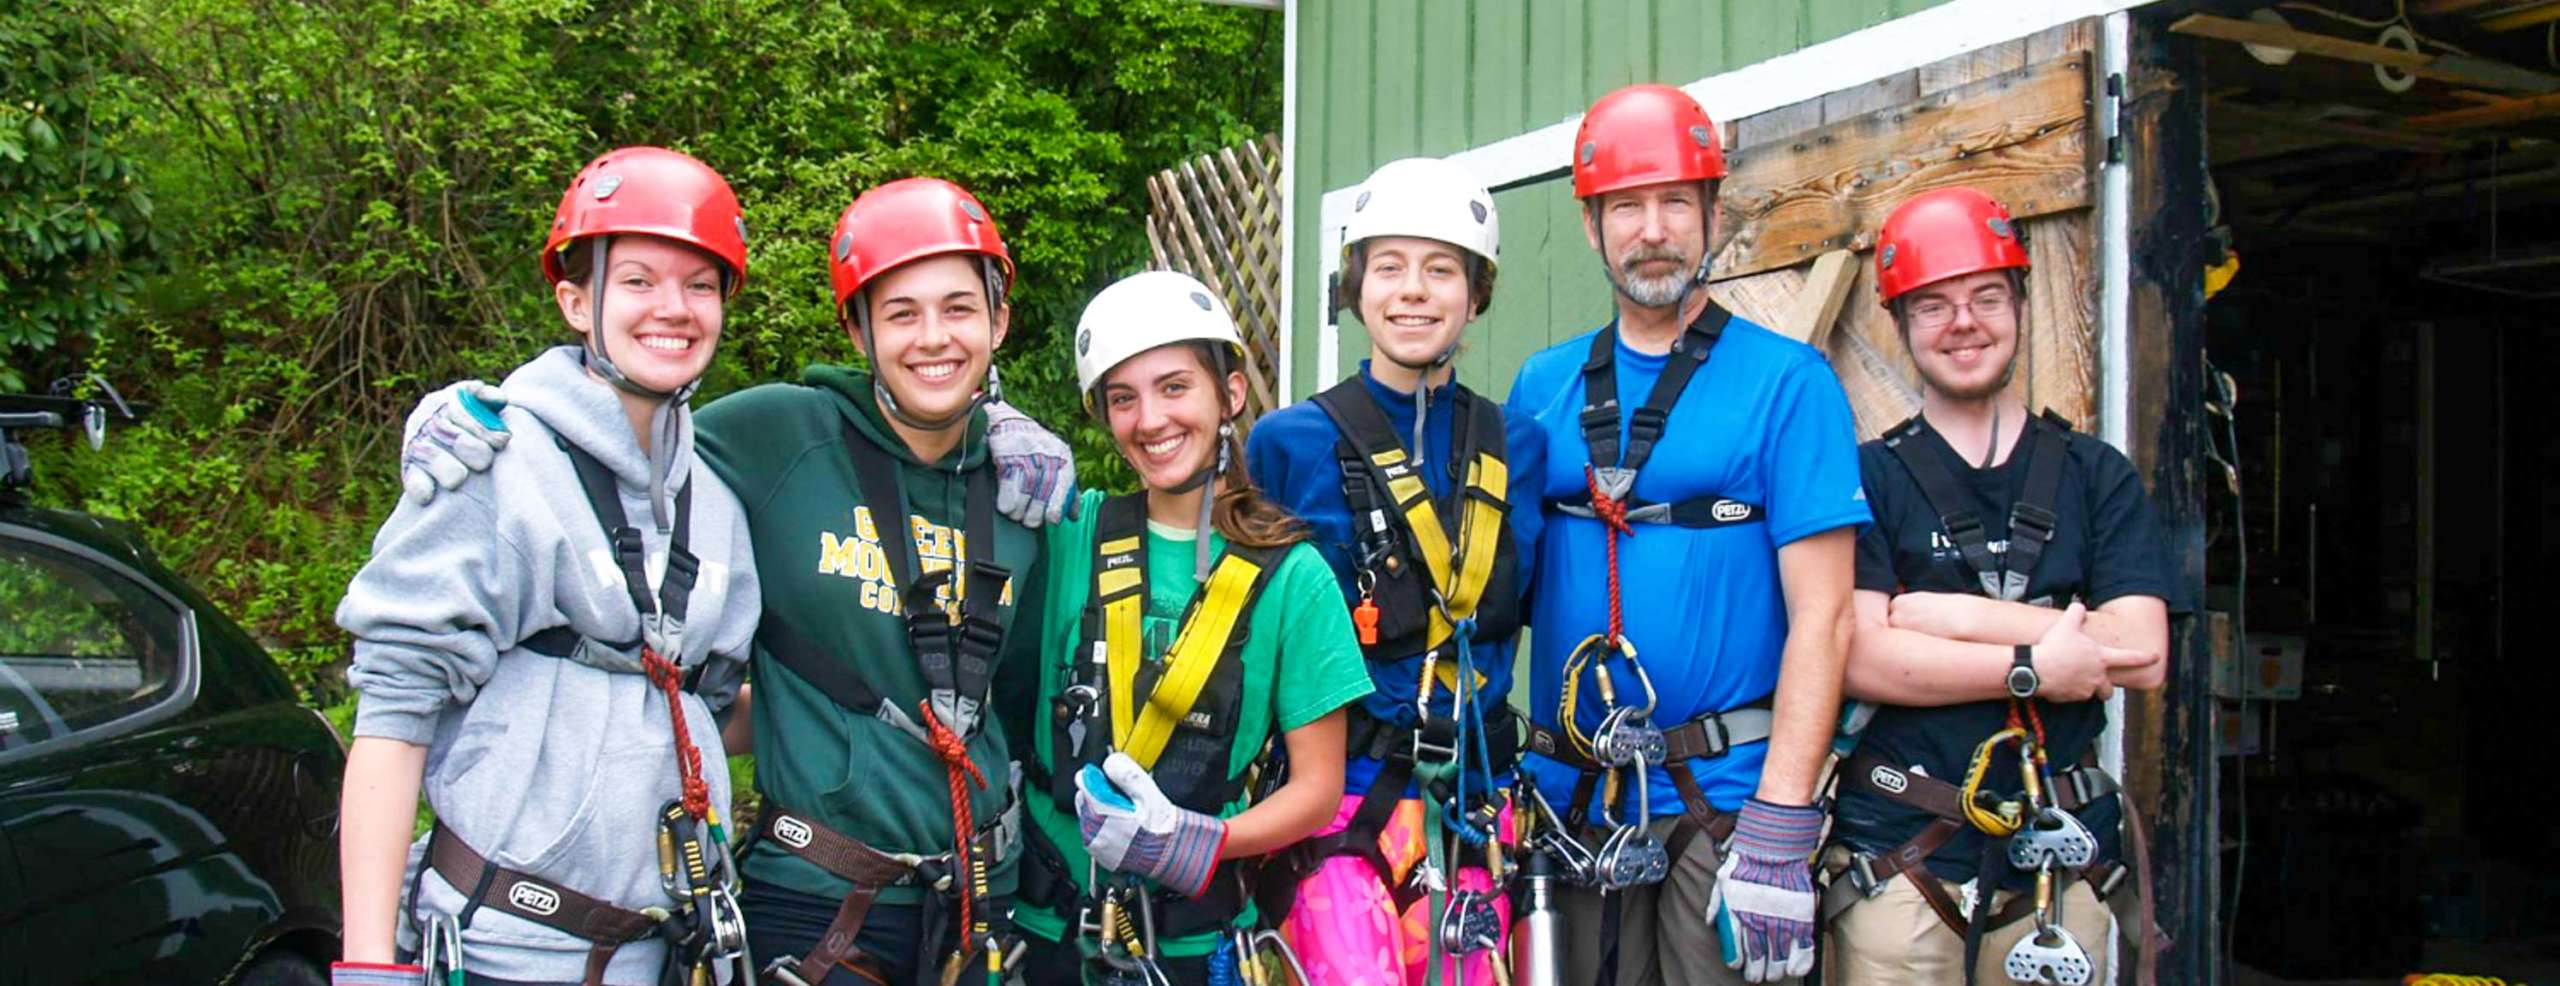 Group of people in zip lining gear taking a group photo